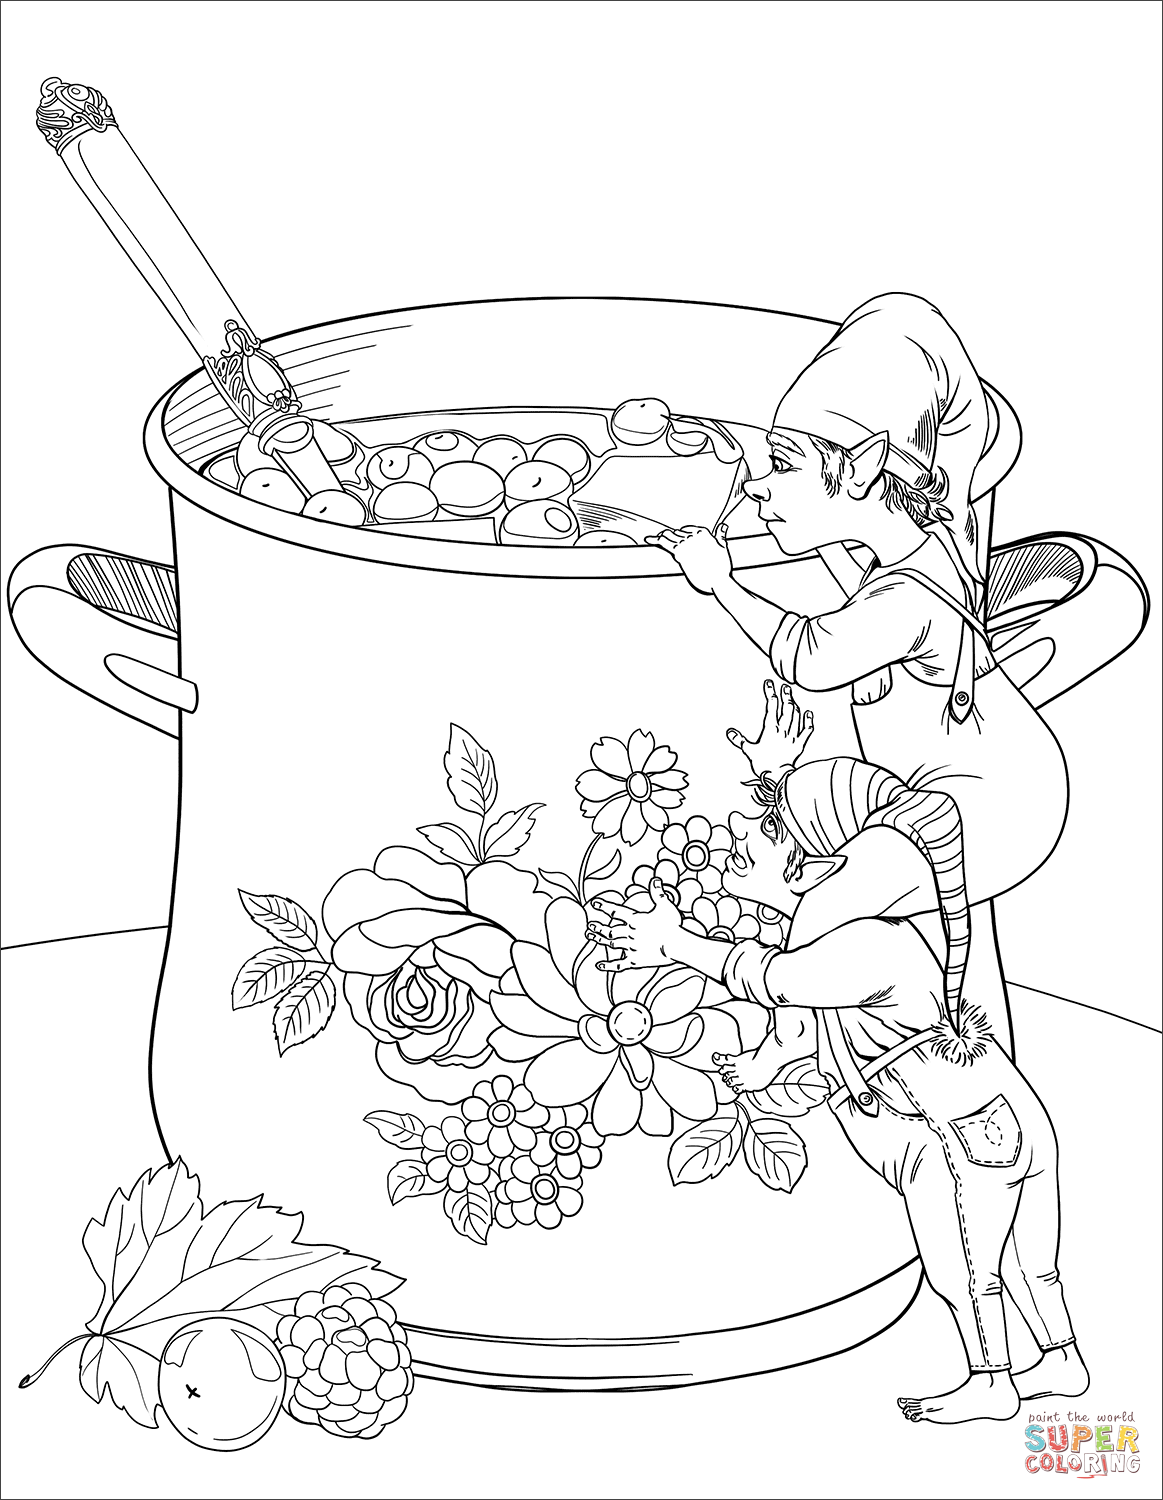 Gnomes Are Going To Taste A Homemade Juice Coloring Page